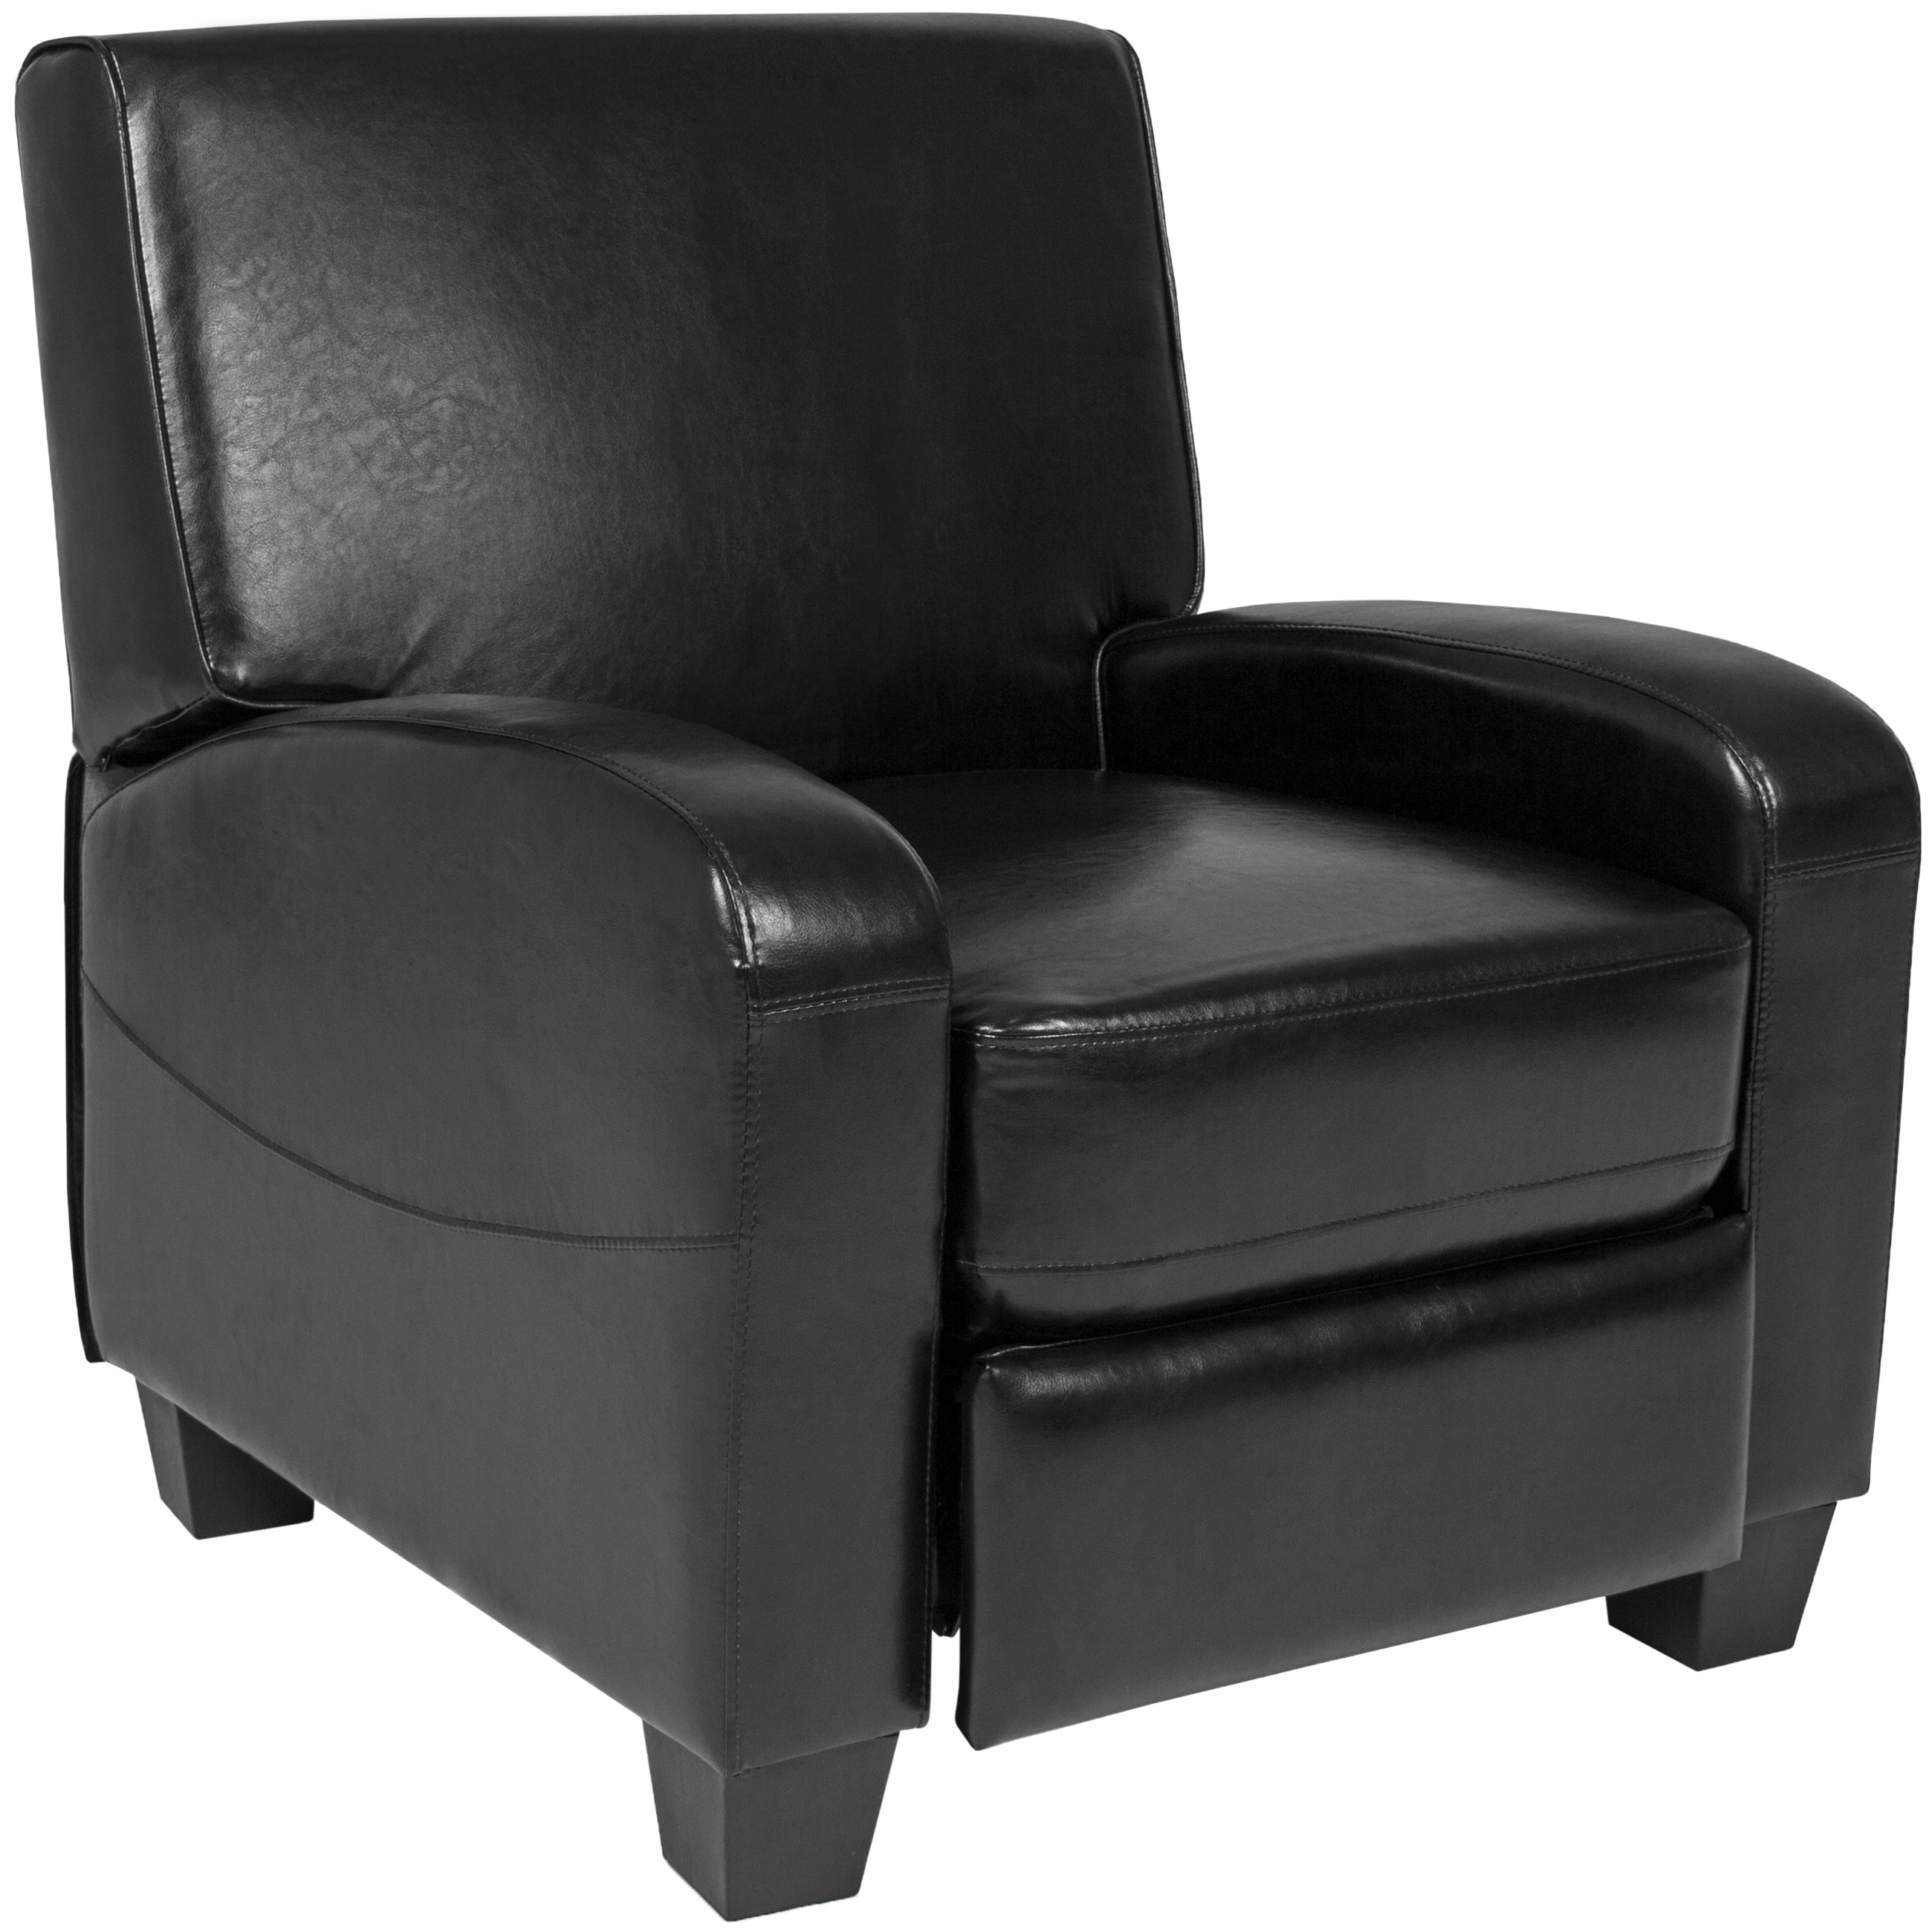 Best Choice Products Padded Upholstery Leather Home Theater Recliner Chair (Black)  sc 1 st  Walmart & Best Choice Products Padded Upholstery Leather Home Theater ... islam-shia.org